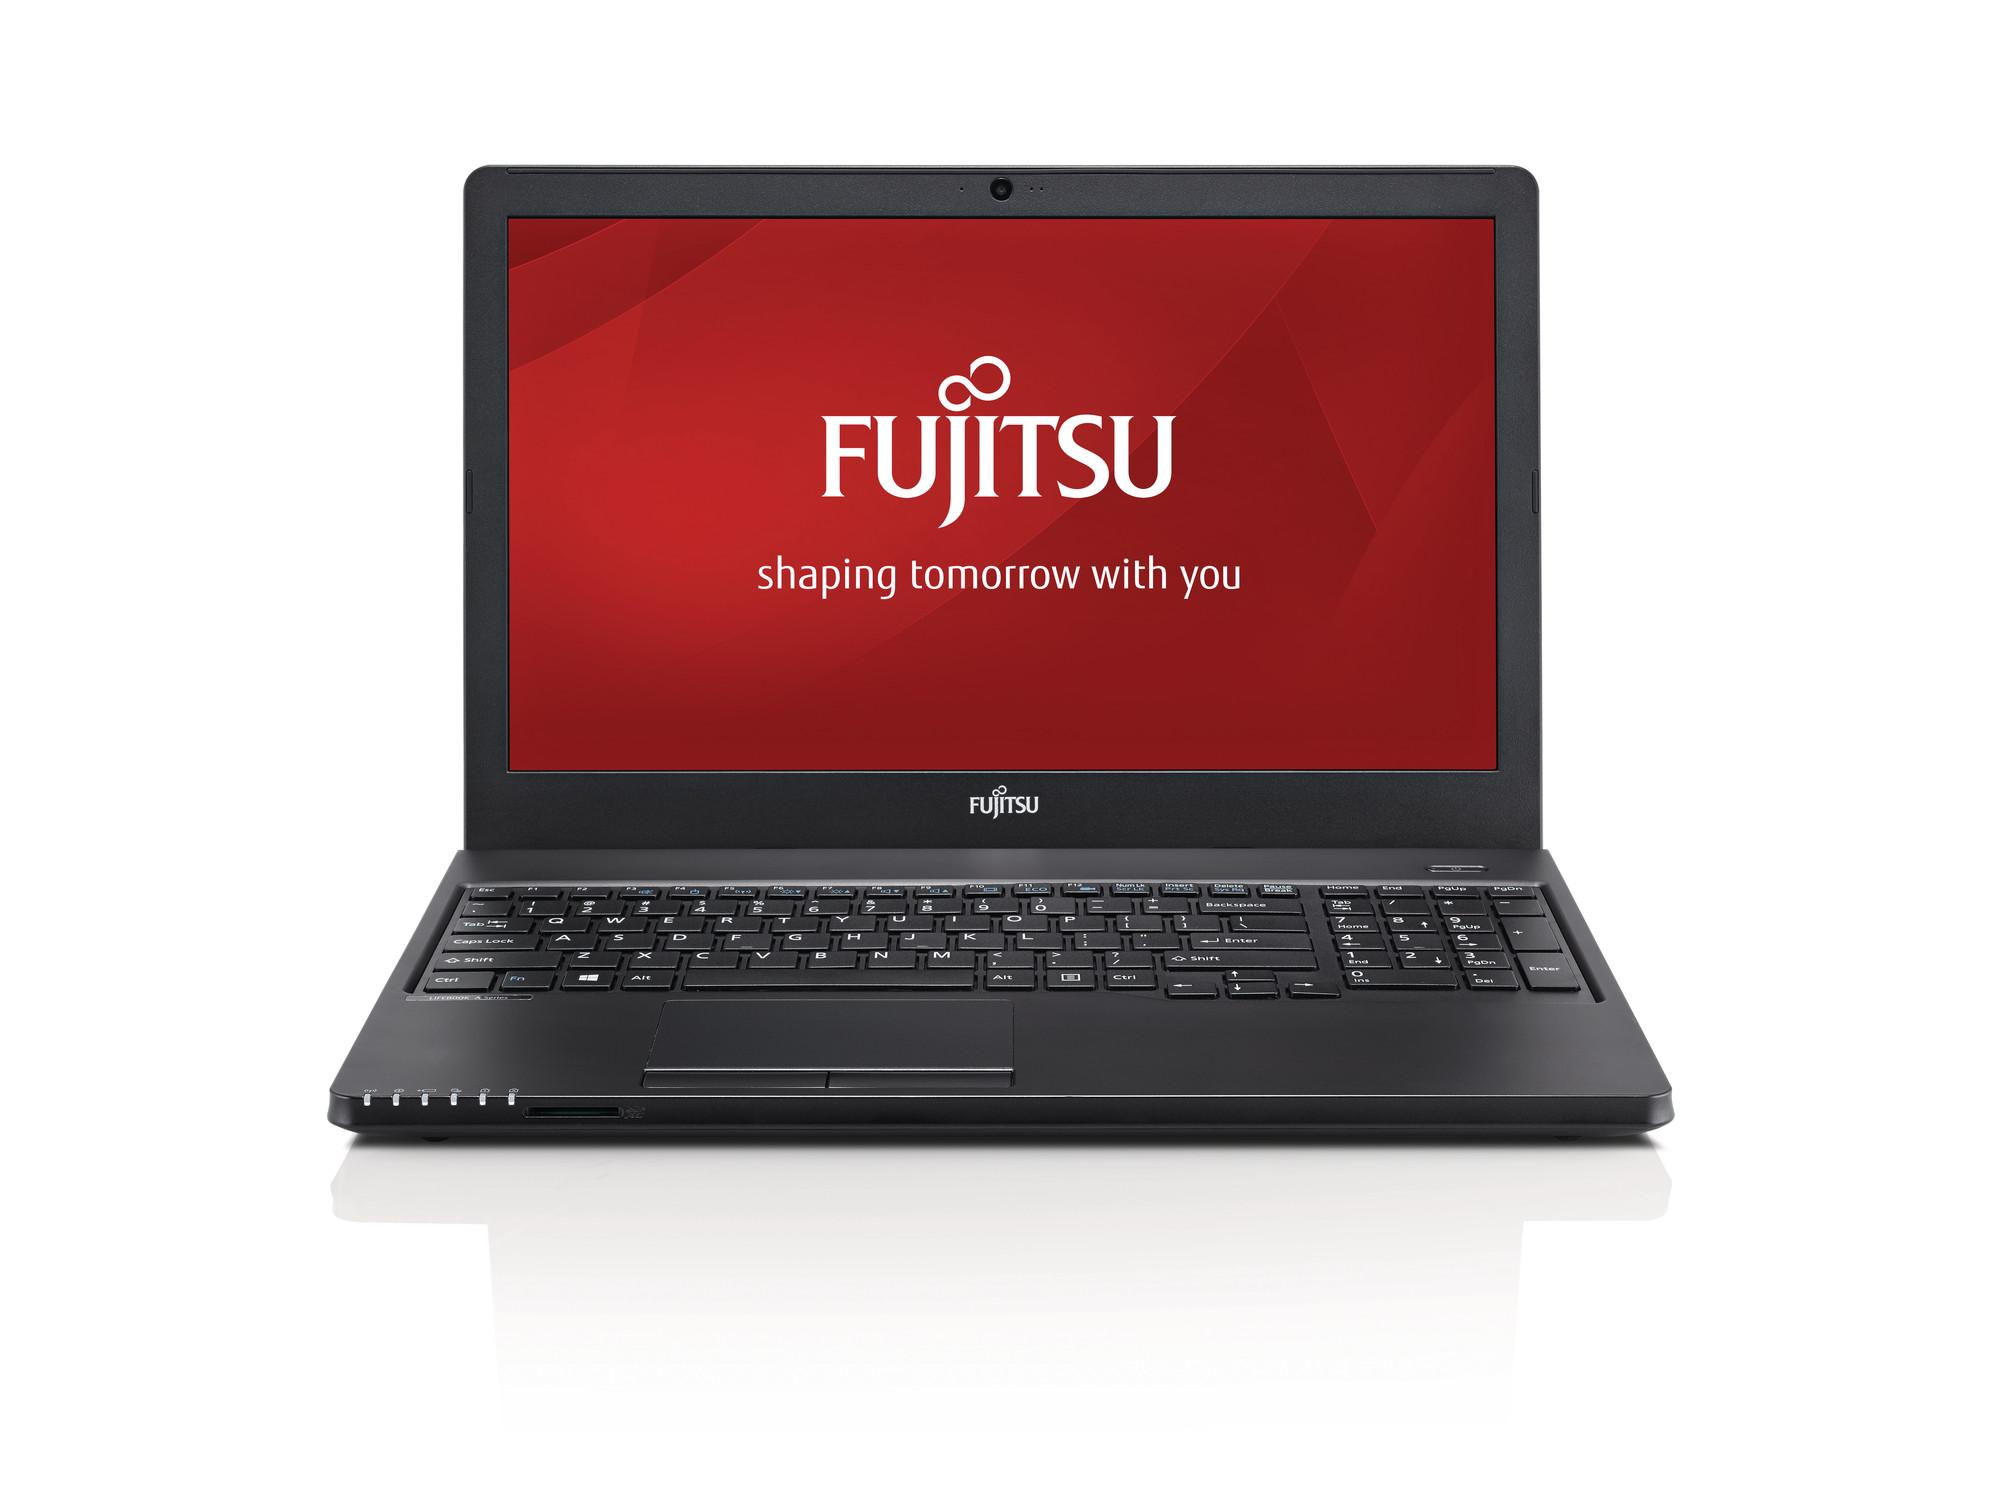 Notebook FUJITSU LIFEBOOK A357 HD, i3-6006U, 4GB, 500Gb HDD,